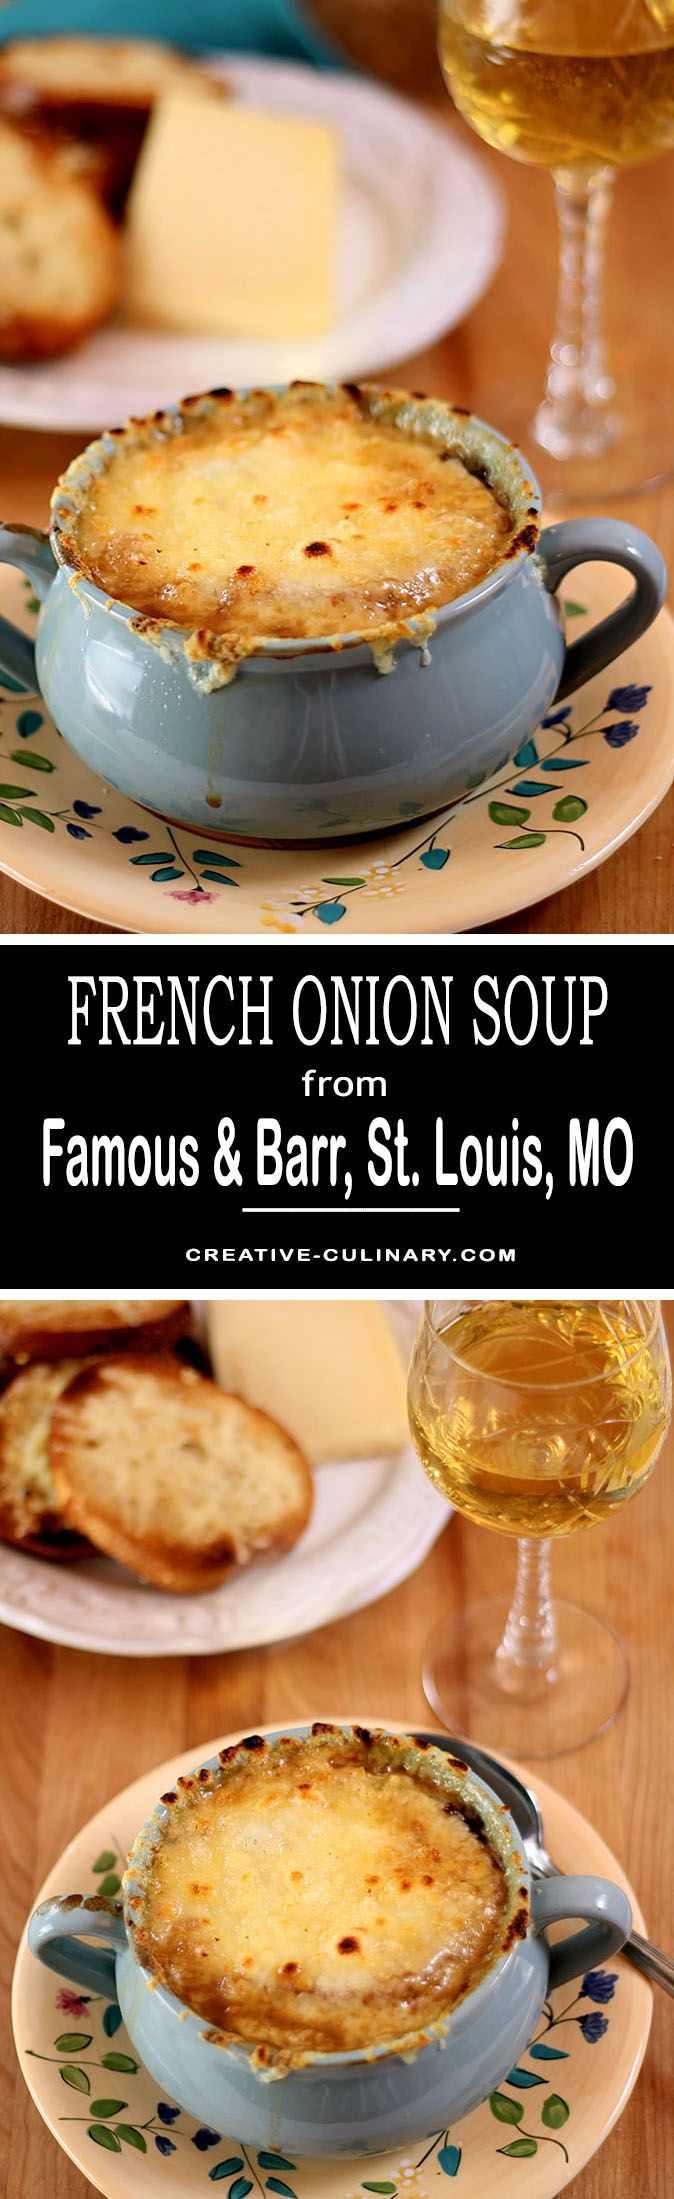 This French Onion Soup from Famous & Barr in St. Louis, MO is my all time favorite. The restaurant maybe be long gone but I'm so grateful this recipe was saved!